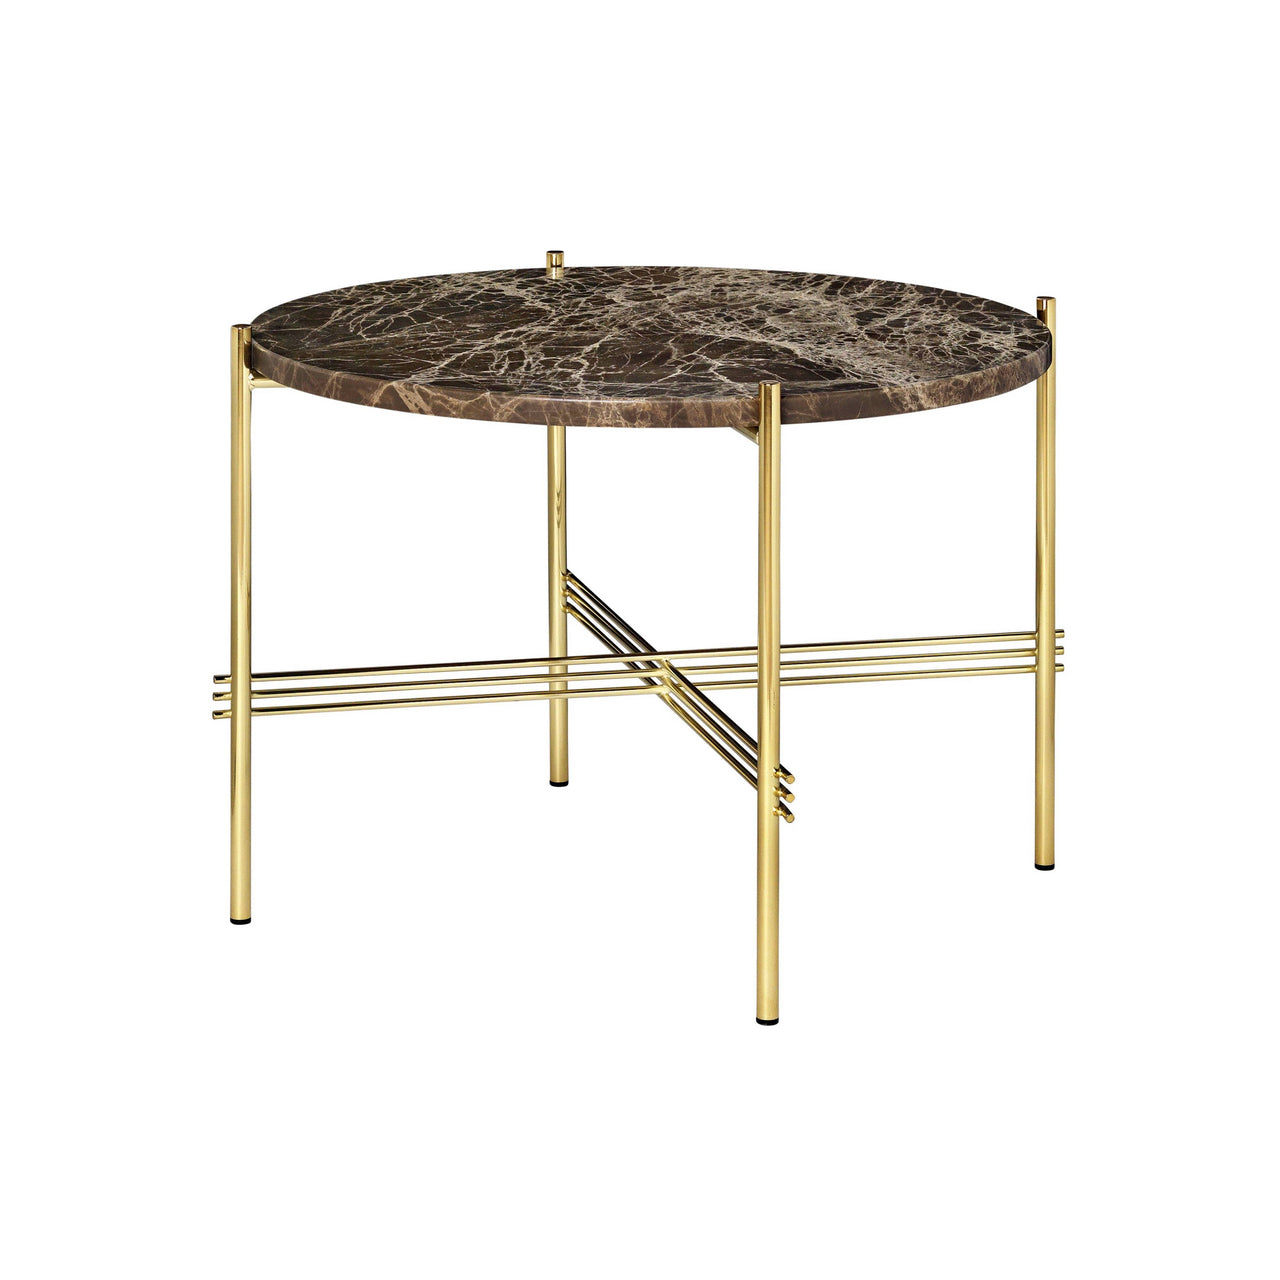 TS Round Coffee Table: Small + Brass Base + Brown Emperador Marble